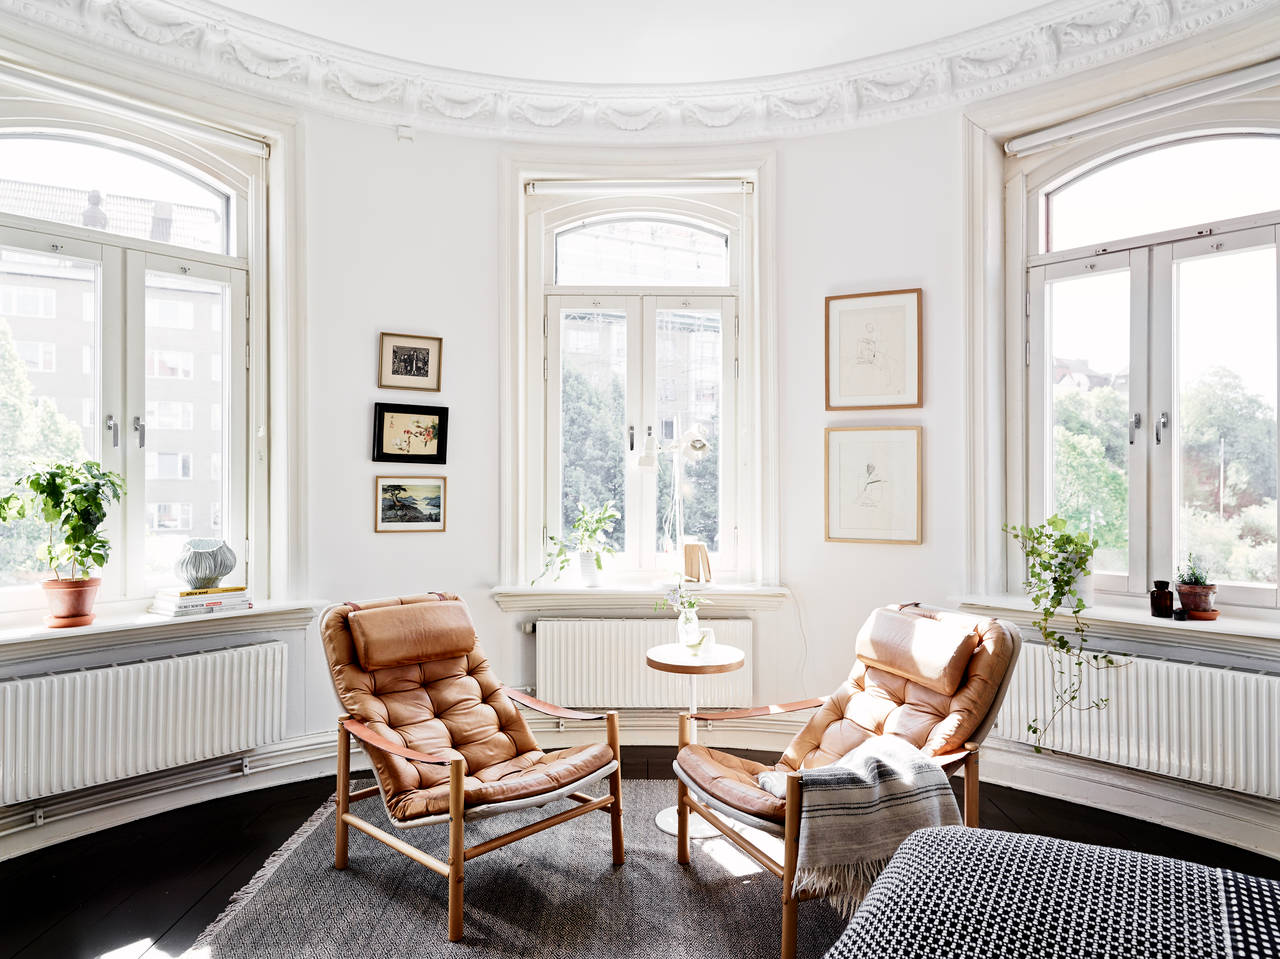 Just Under A 1000 Square Feet And Located In Gothenberg Sweden This Small 2 Bedroom Apartment Is Perfectly Edited Inside Building Built 1899 With